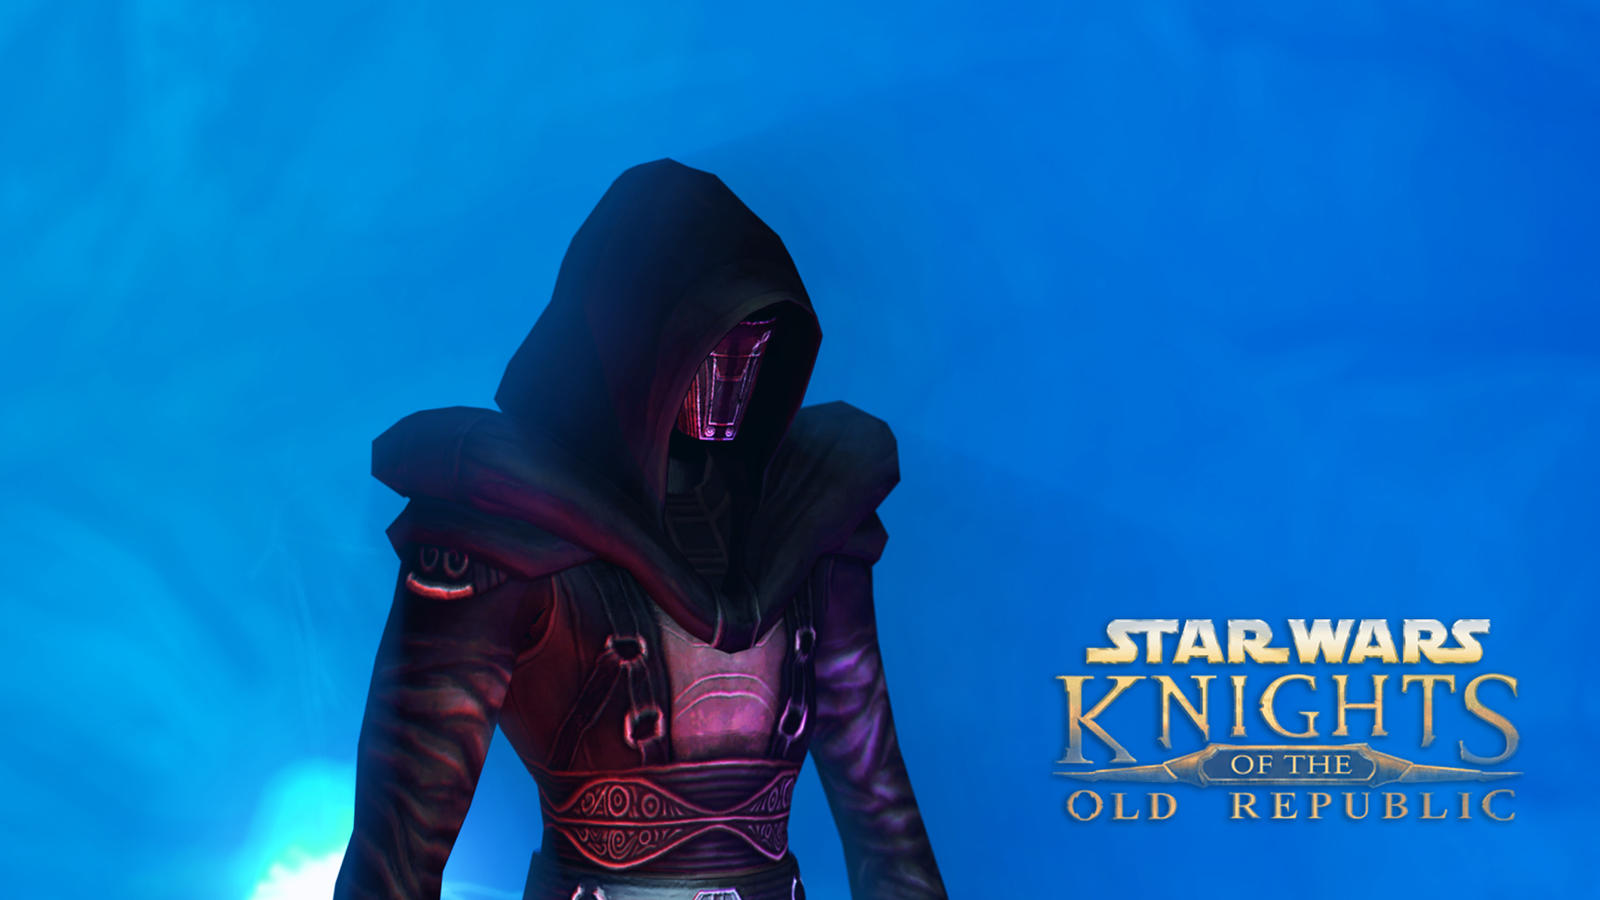 Star Wars Knights Of The Old Republic (Revan) By Sedemsto